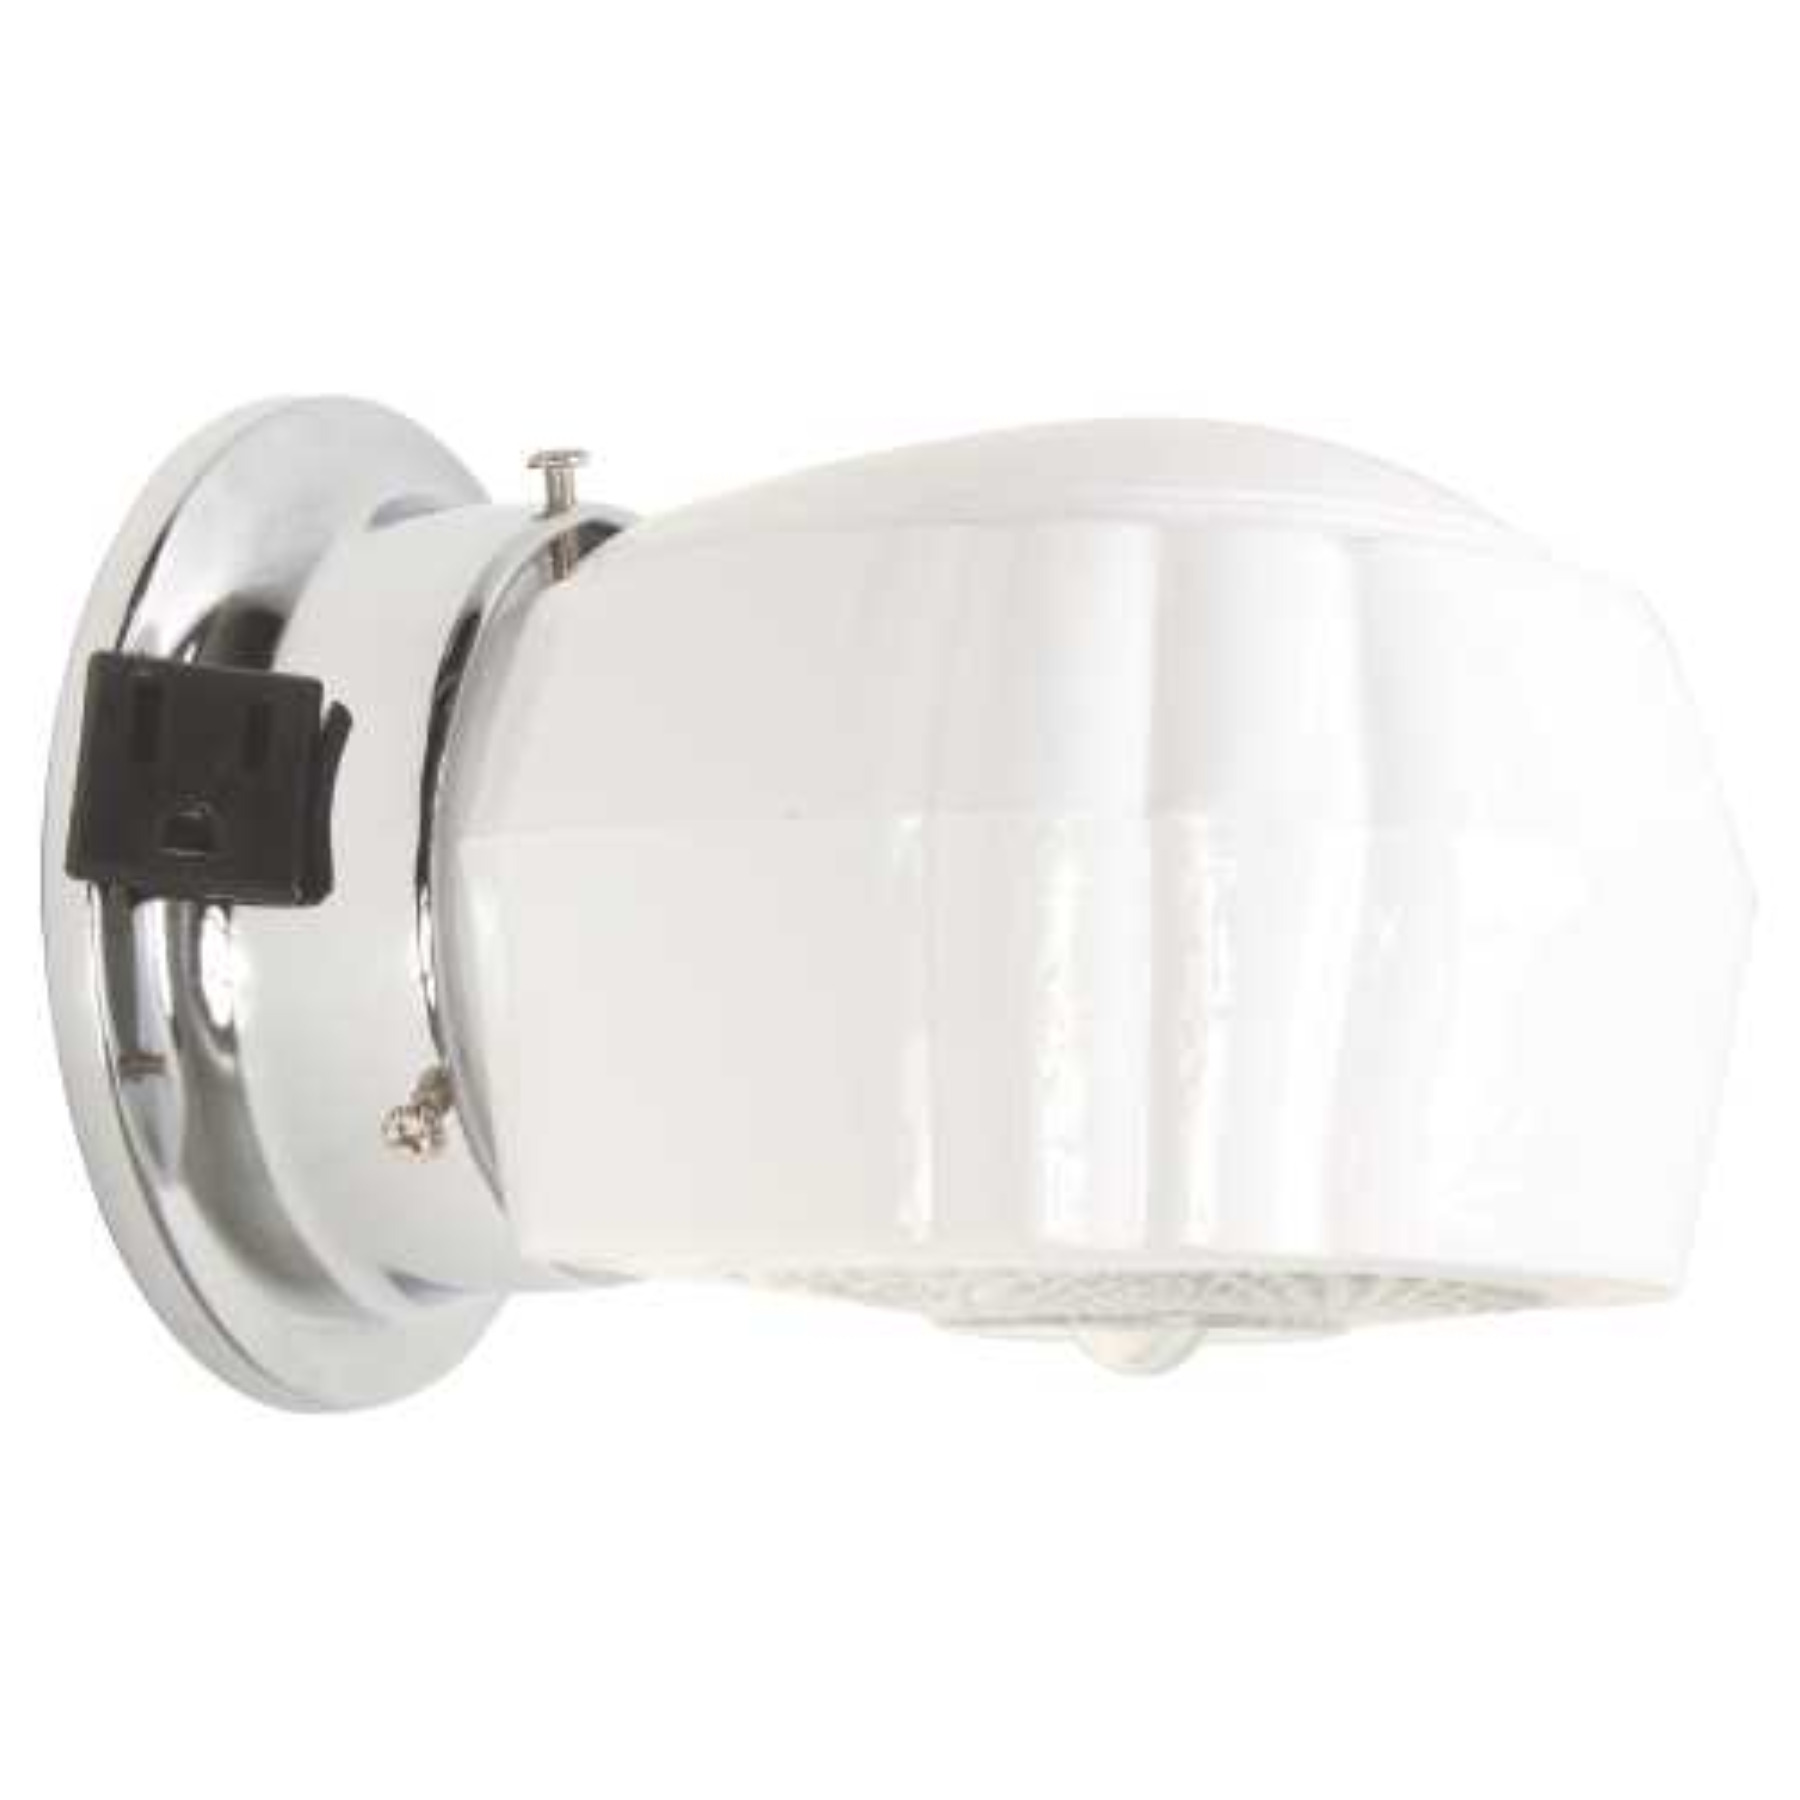 """ROYAL COVE BATHROOM WALL FIXTURE WITH OUTLET, 5-3/4"""", POLISHED CHROME, USES 1 60-WATT INCANDESCENT MEDIUM BASE BULB"""